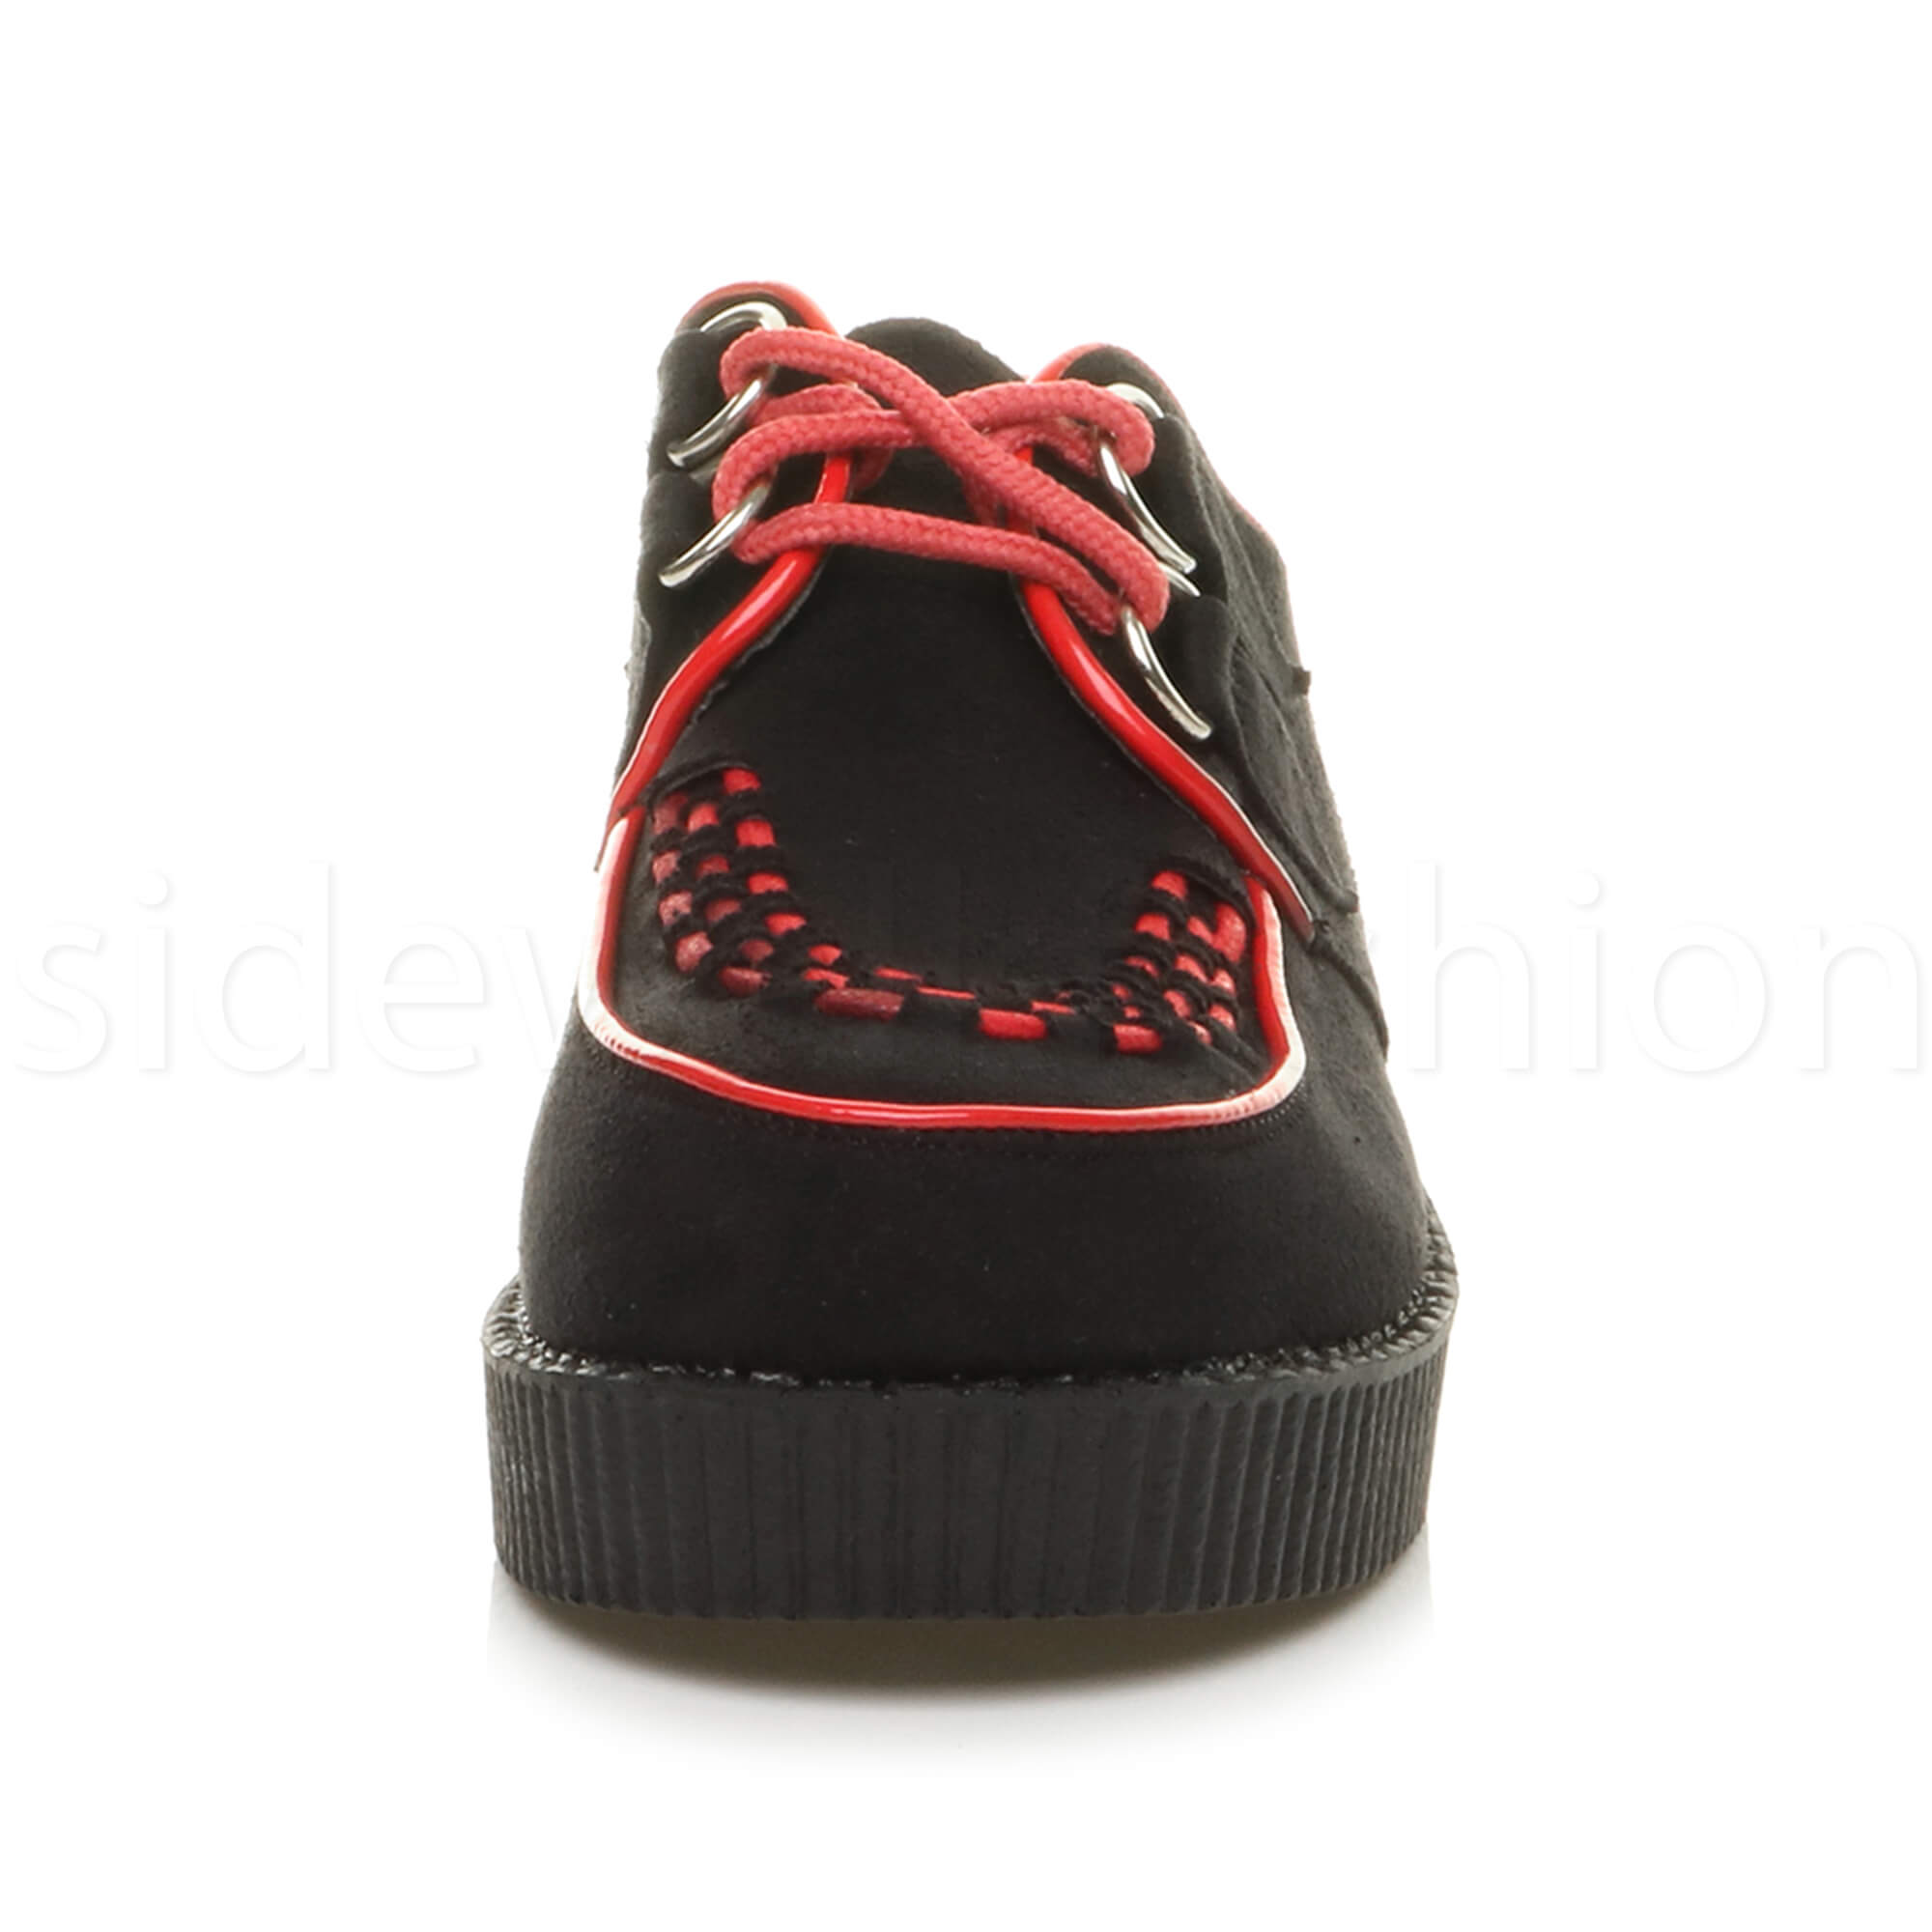 Womens-ladies-flat-platform-wedge-lace-up-goth-punk-creepers-shoes-boots-size miniatura 11